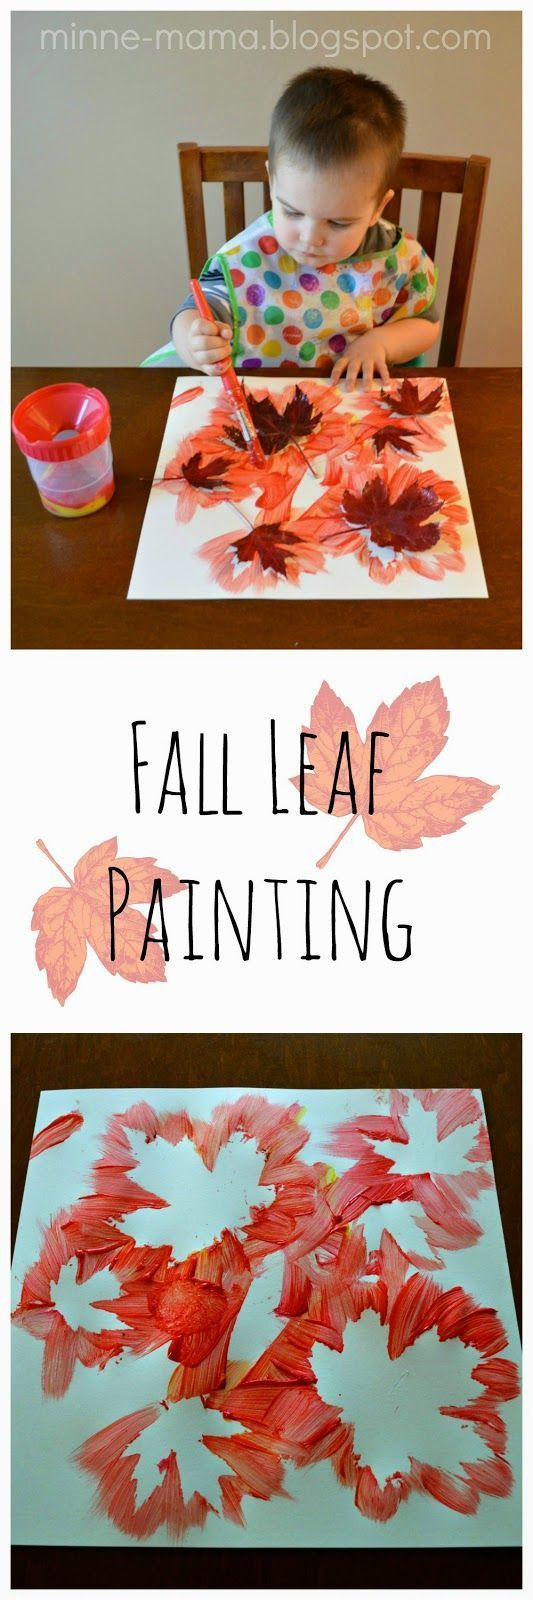 Minne-Mama: Super simple, beautiful Fall Leaf Painting for toddlers, preschoolers, and older kids!